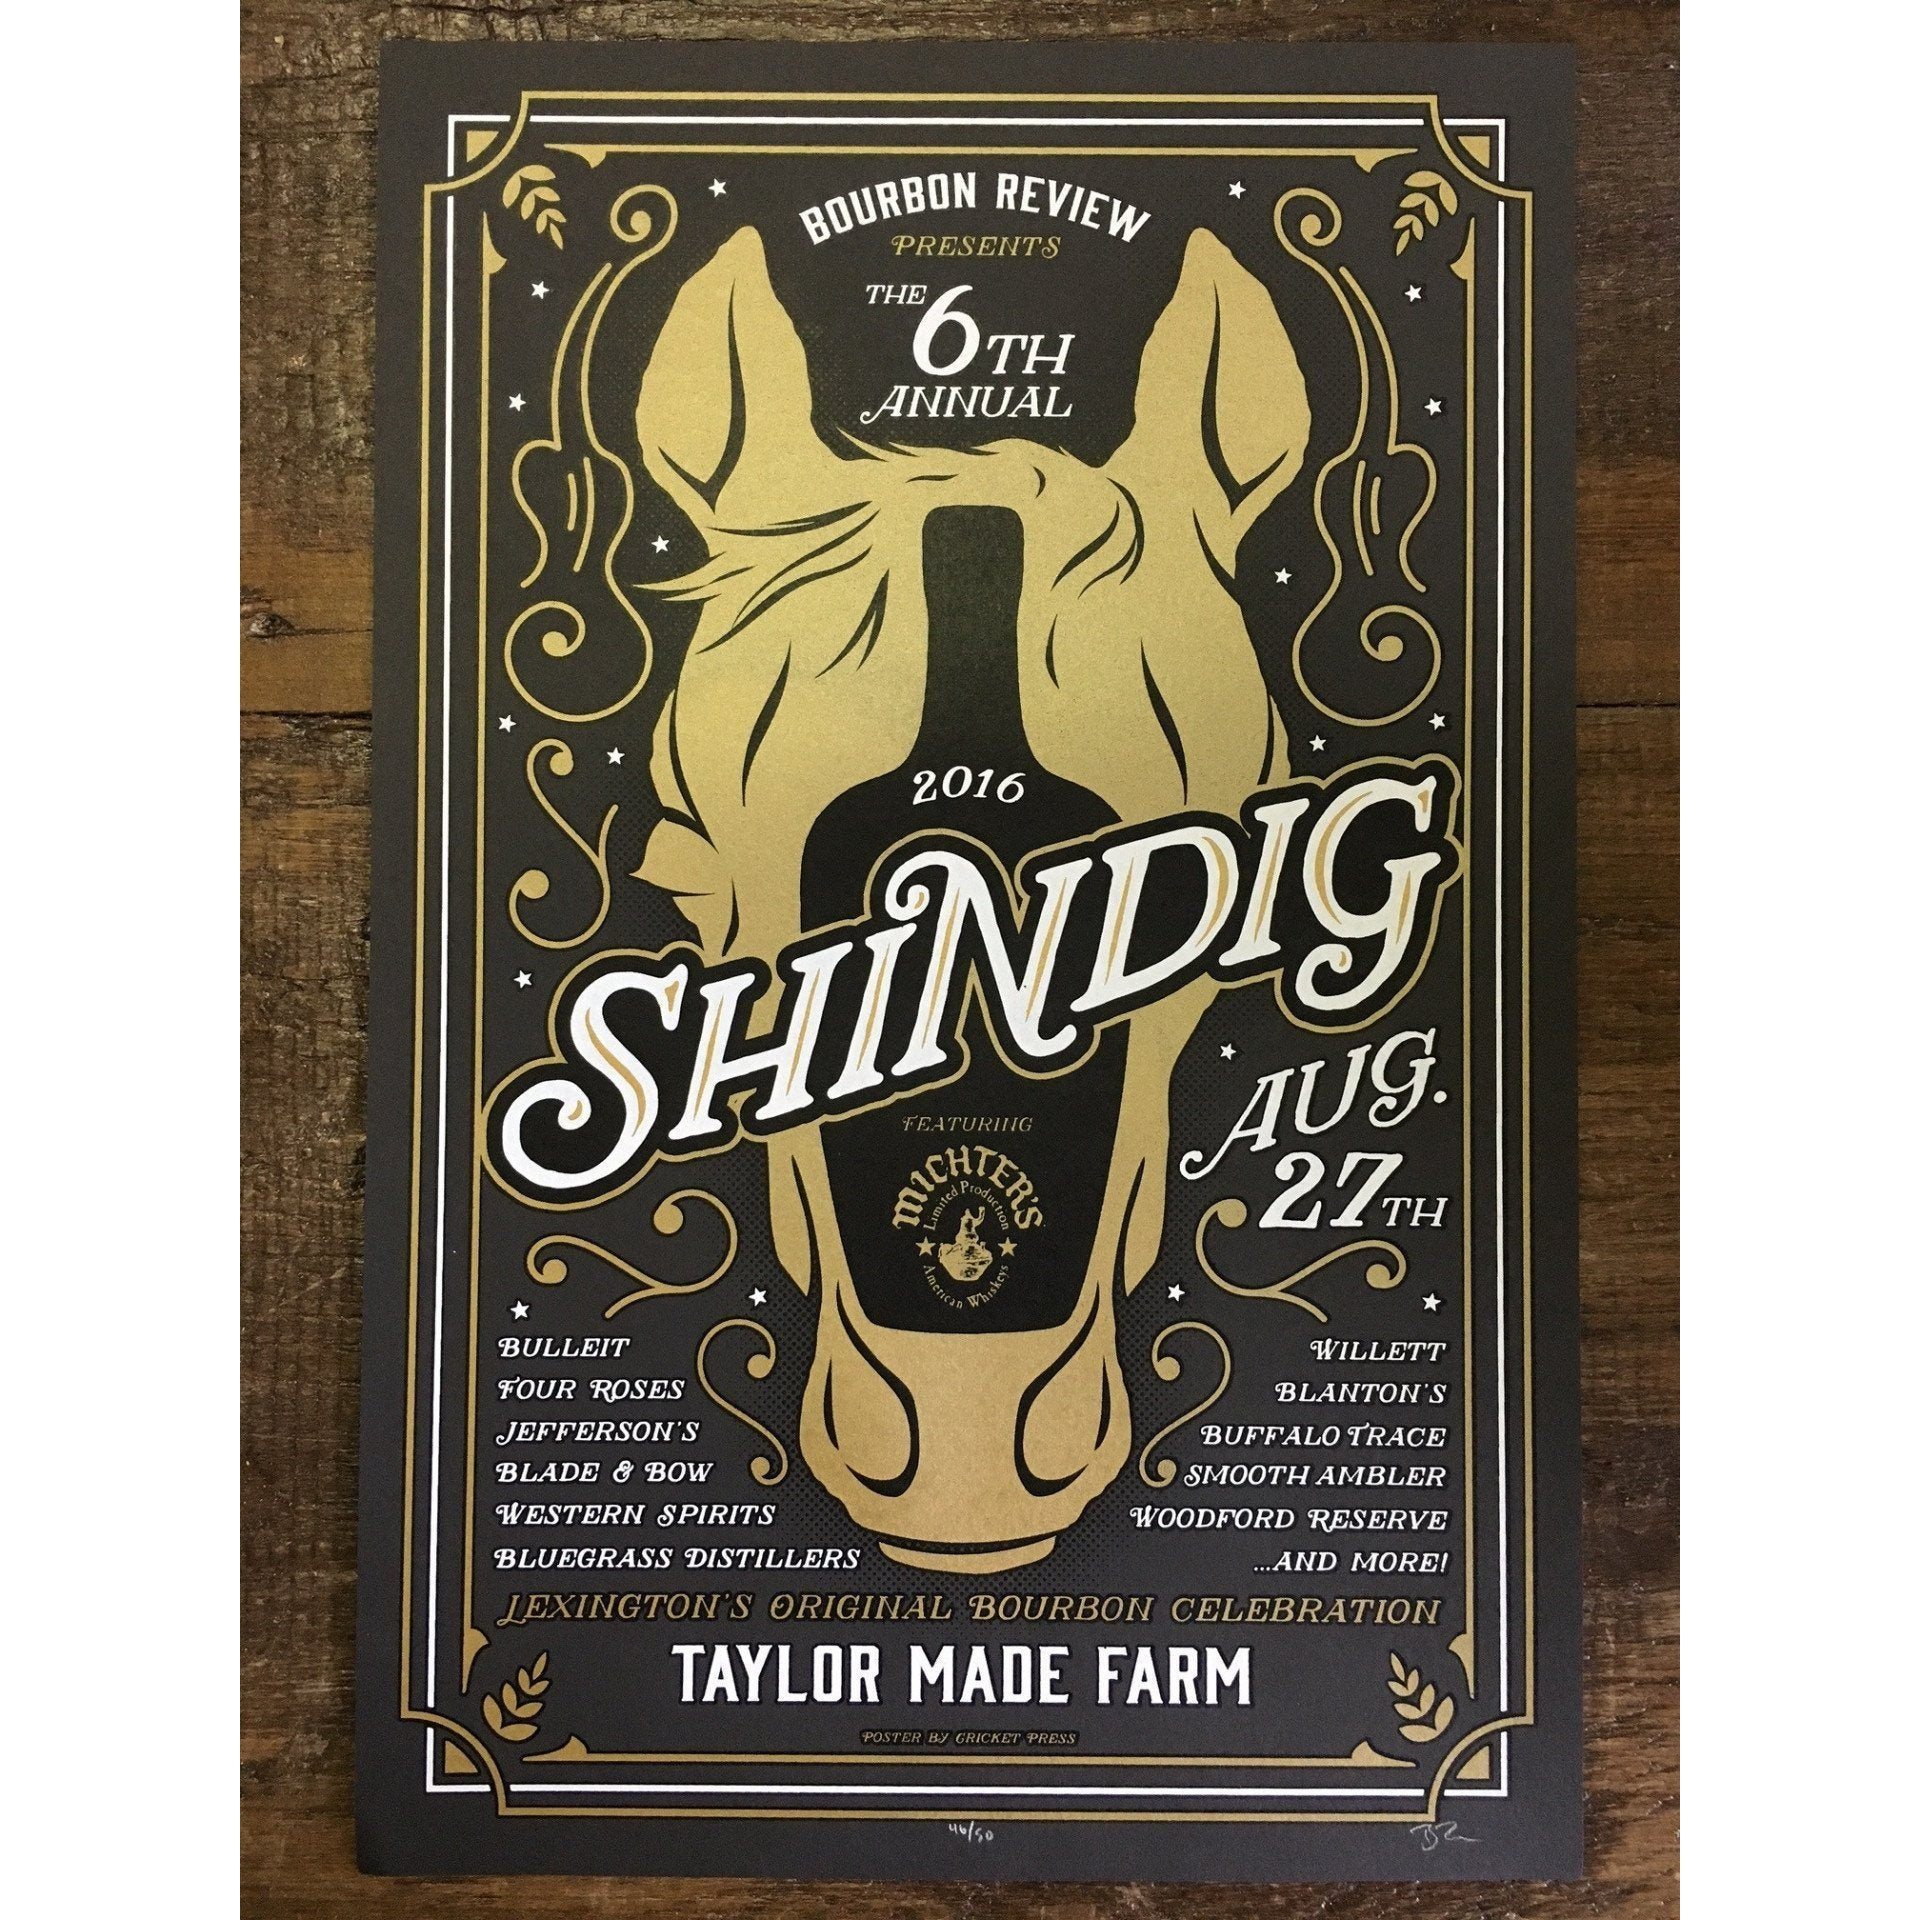 Bourbon Review Shindig Poster 2016 - Bourbon Outfitters